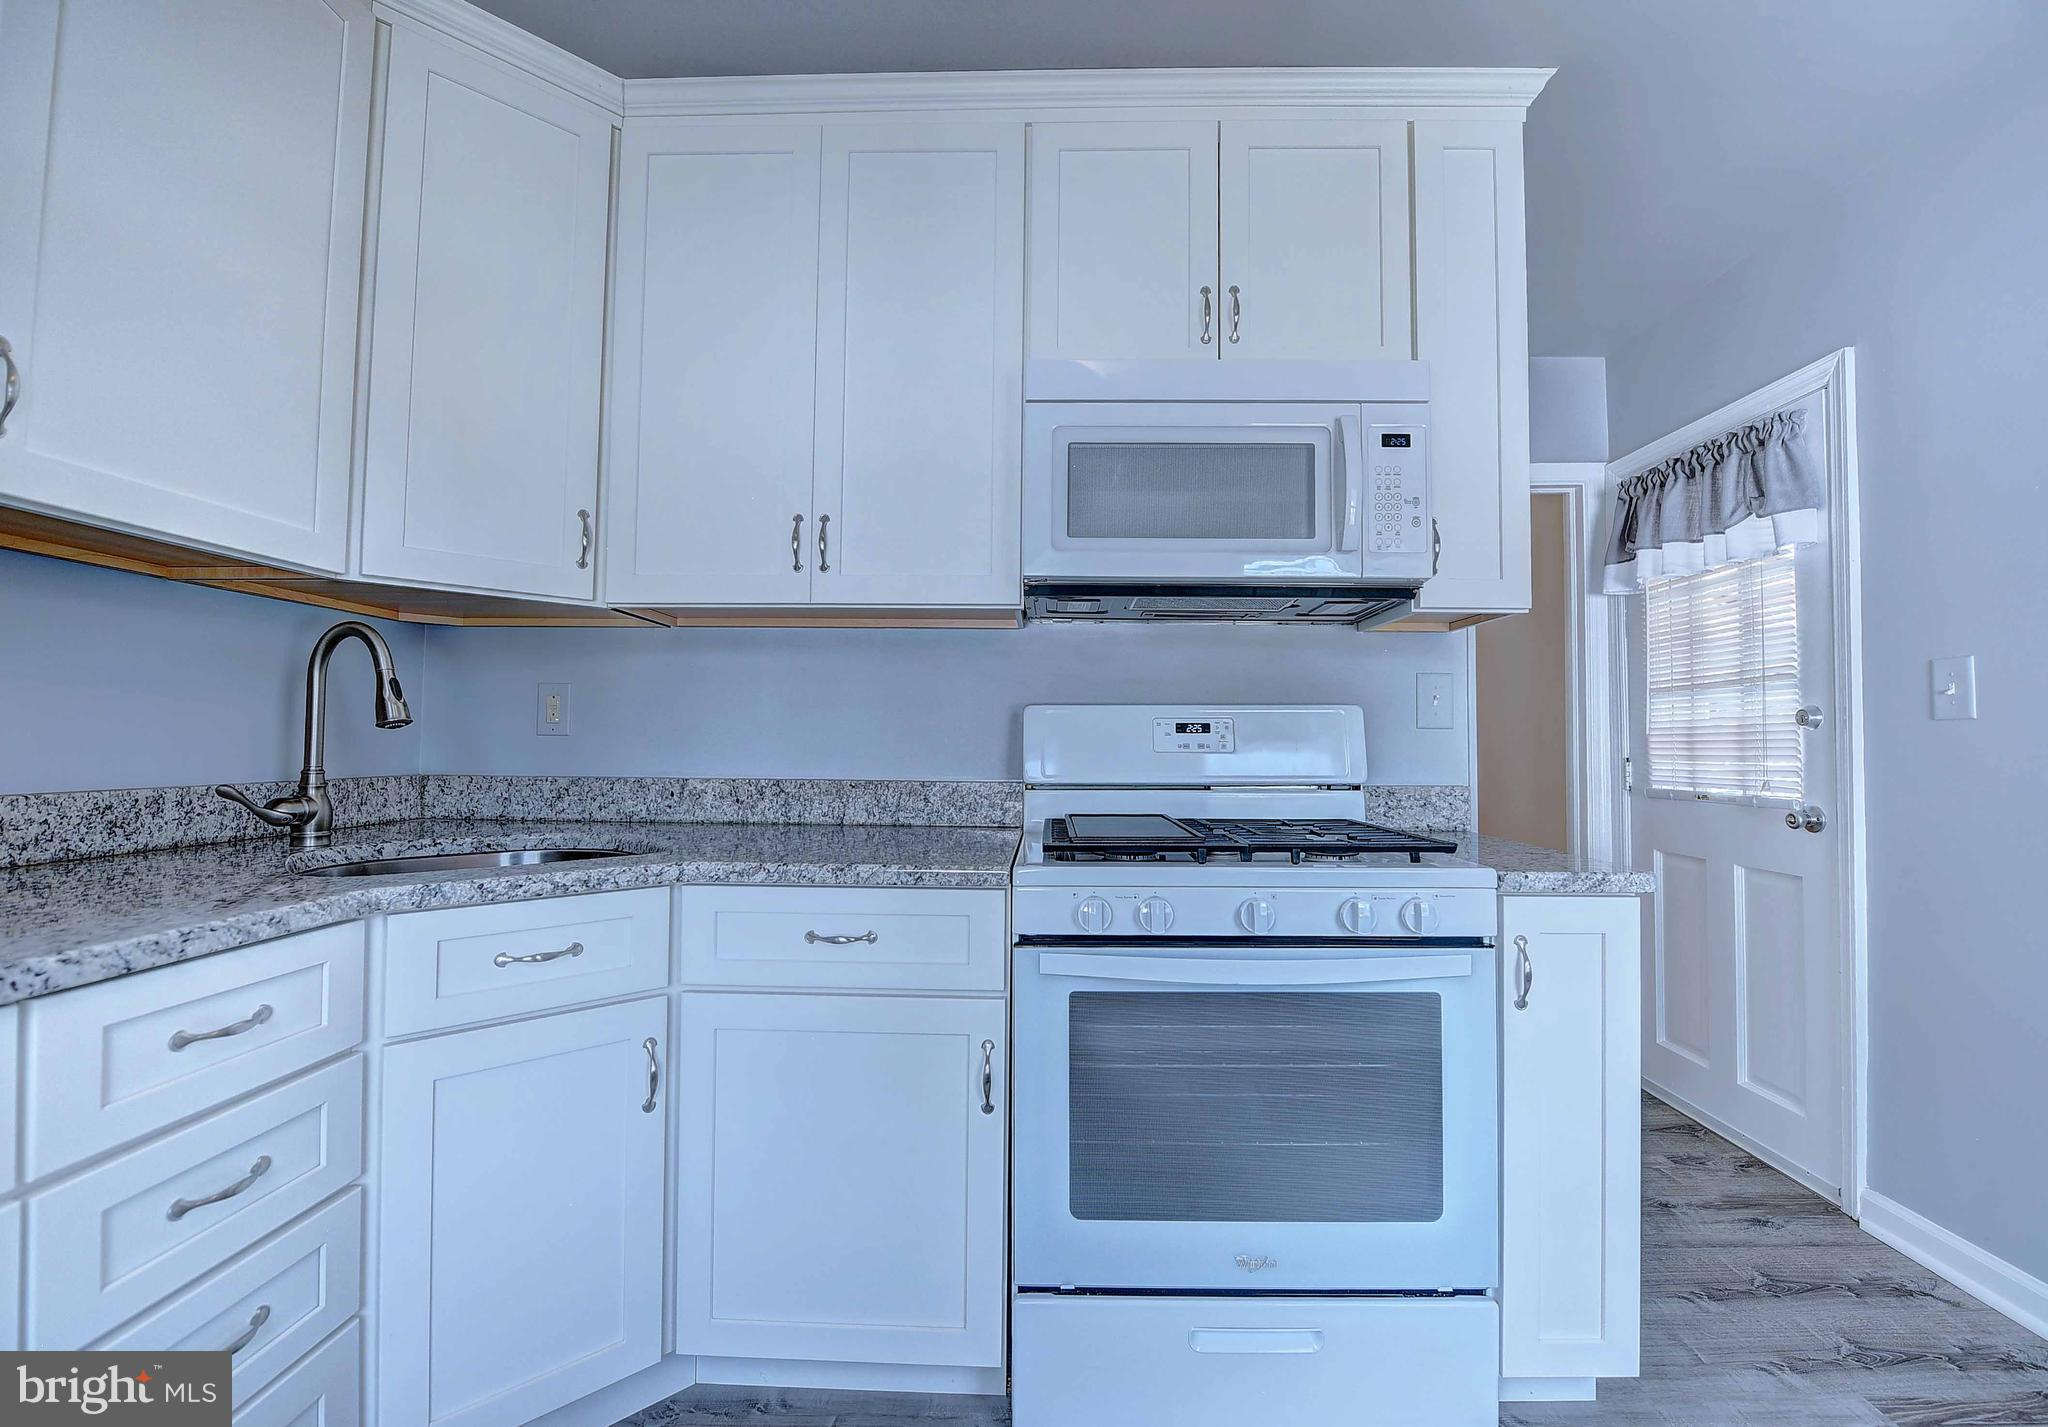 323 WOODWARD DRIVE, Baltimore, MD 21221 - SOLD LISTING, MLS ...